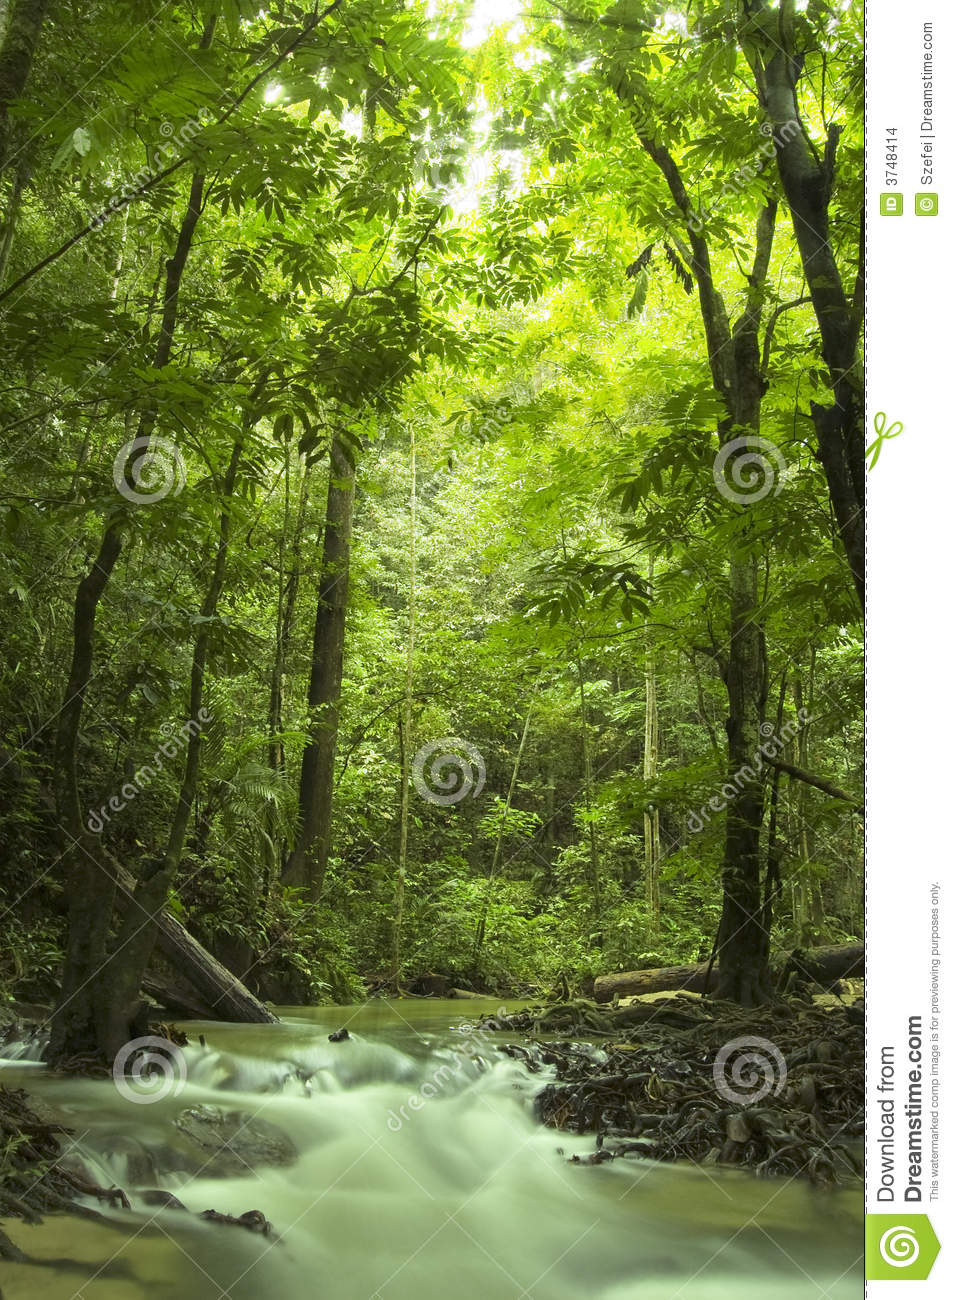 Fall Moving Wallpaper Green Forest And Stream Stock Images Image 3748414